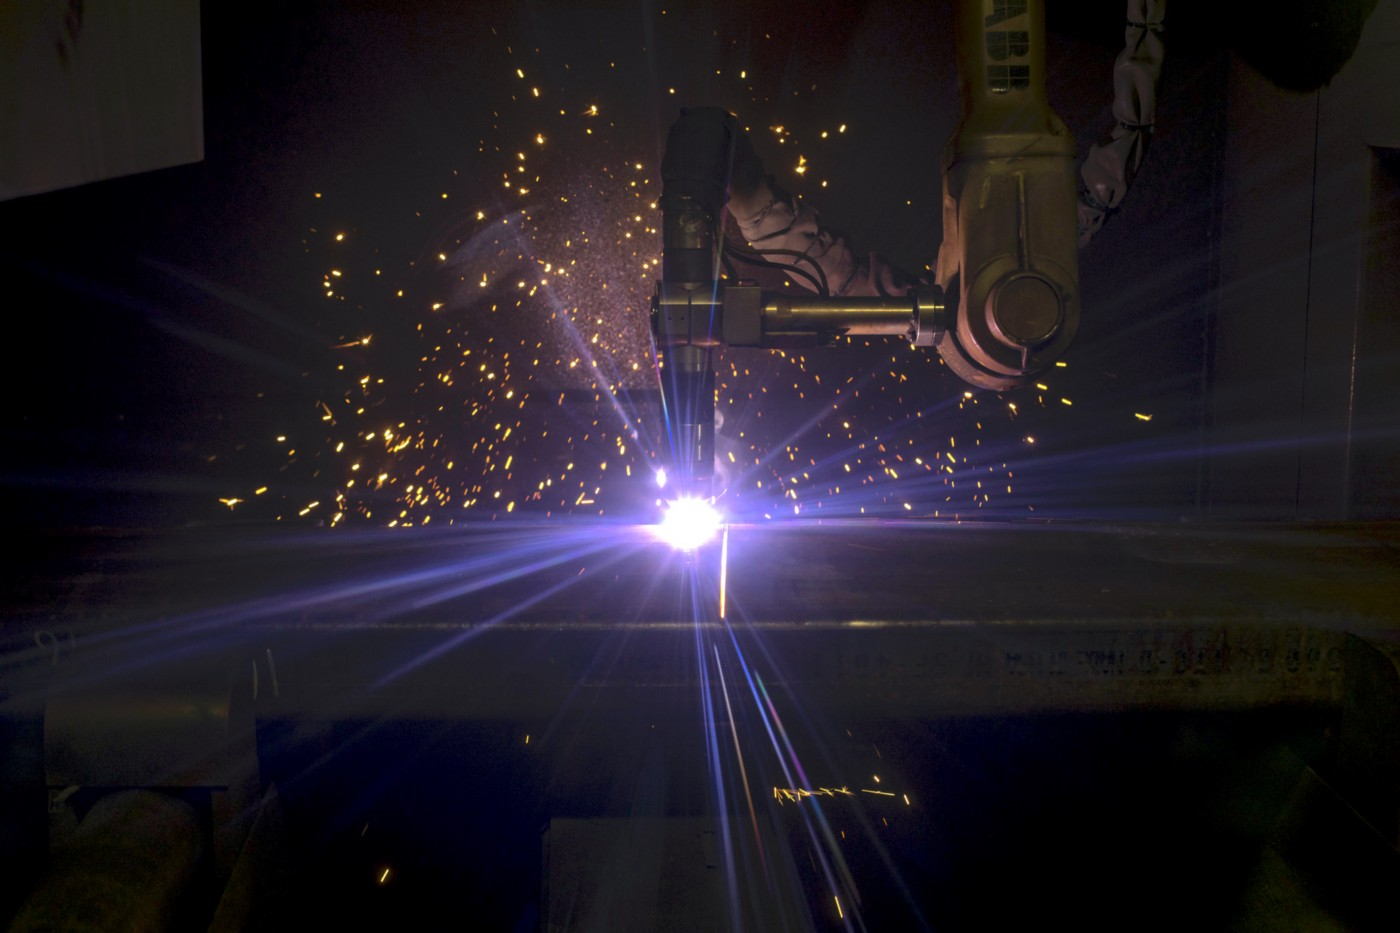 A robotic arm welding machinery as sparks fly around it.